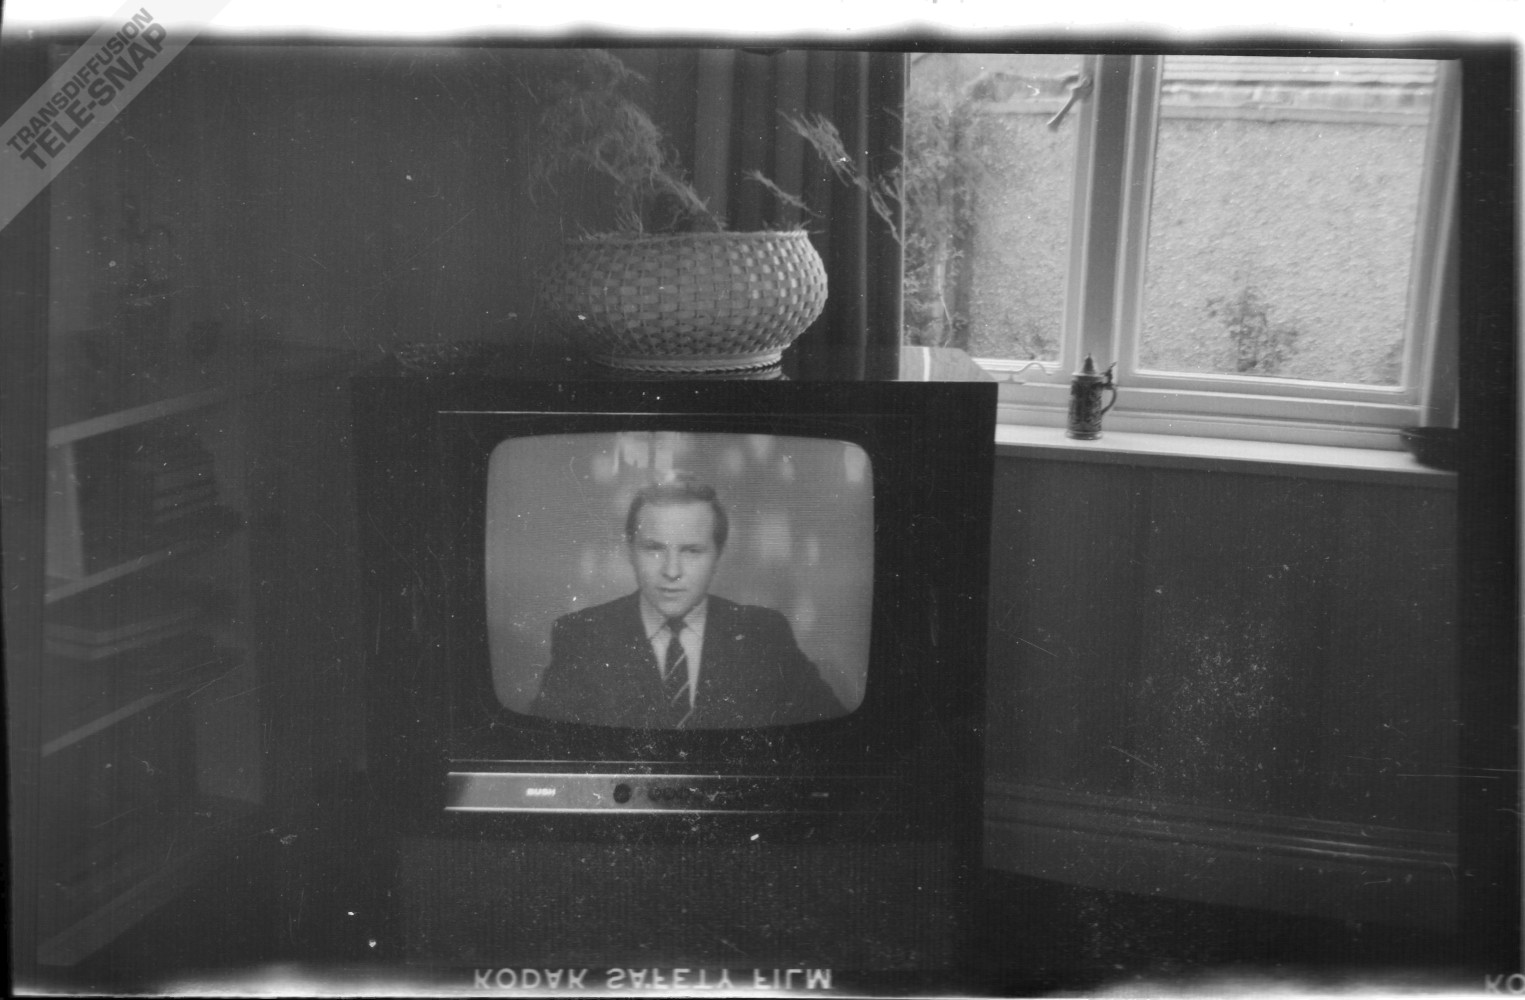 David Hamilton on ABC North in 1963